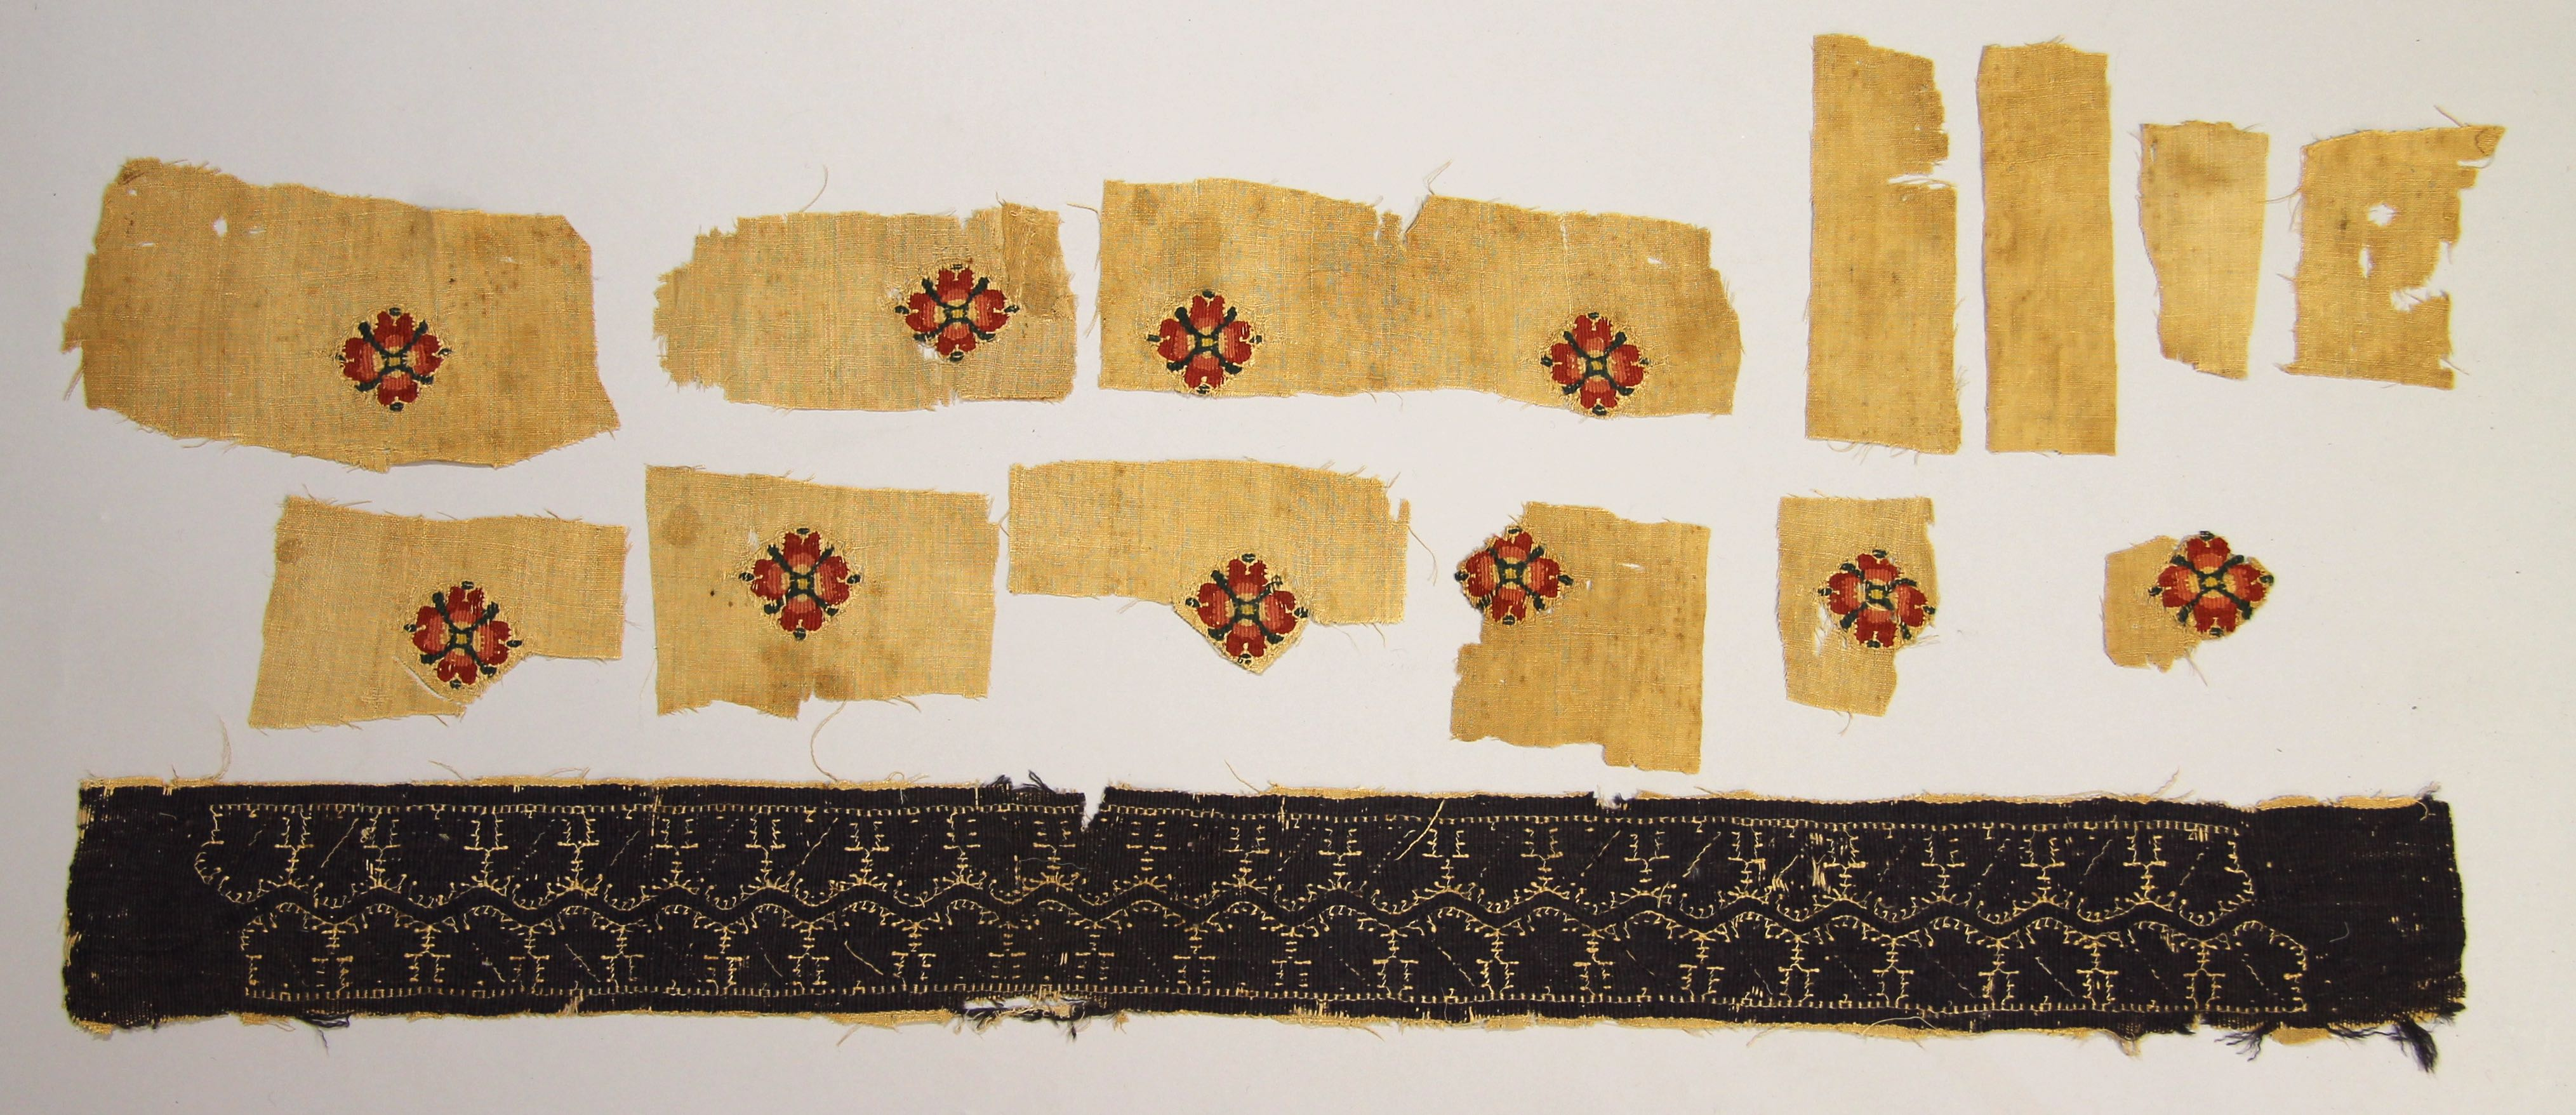 Fragments from a Coptic tunic